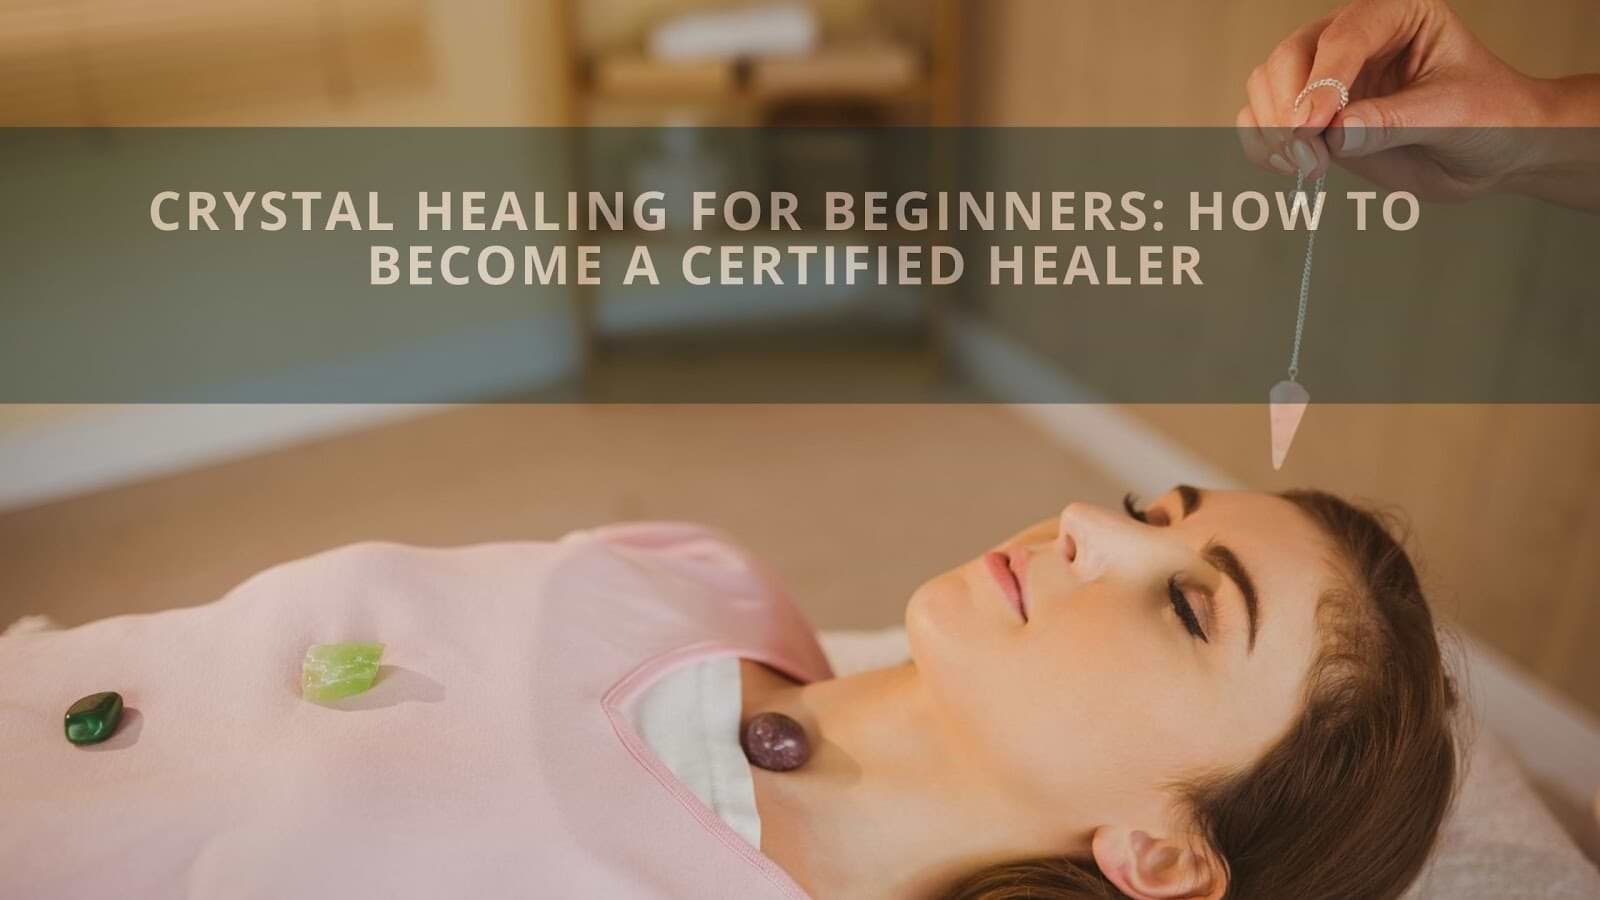 How to Become a Certified Healer